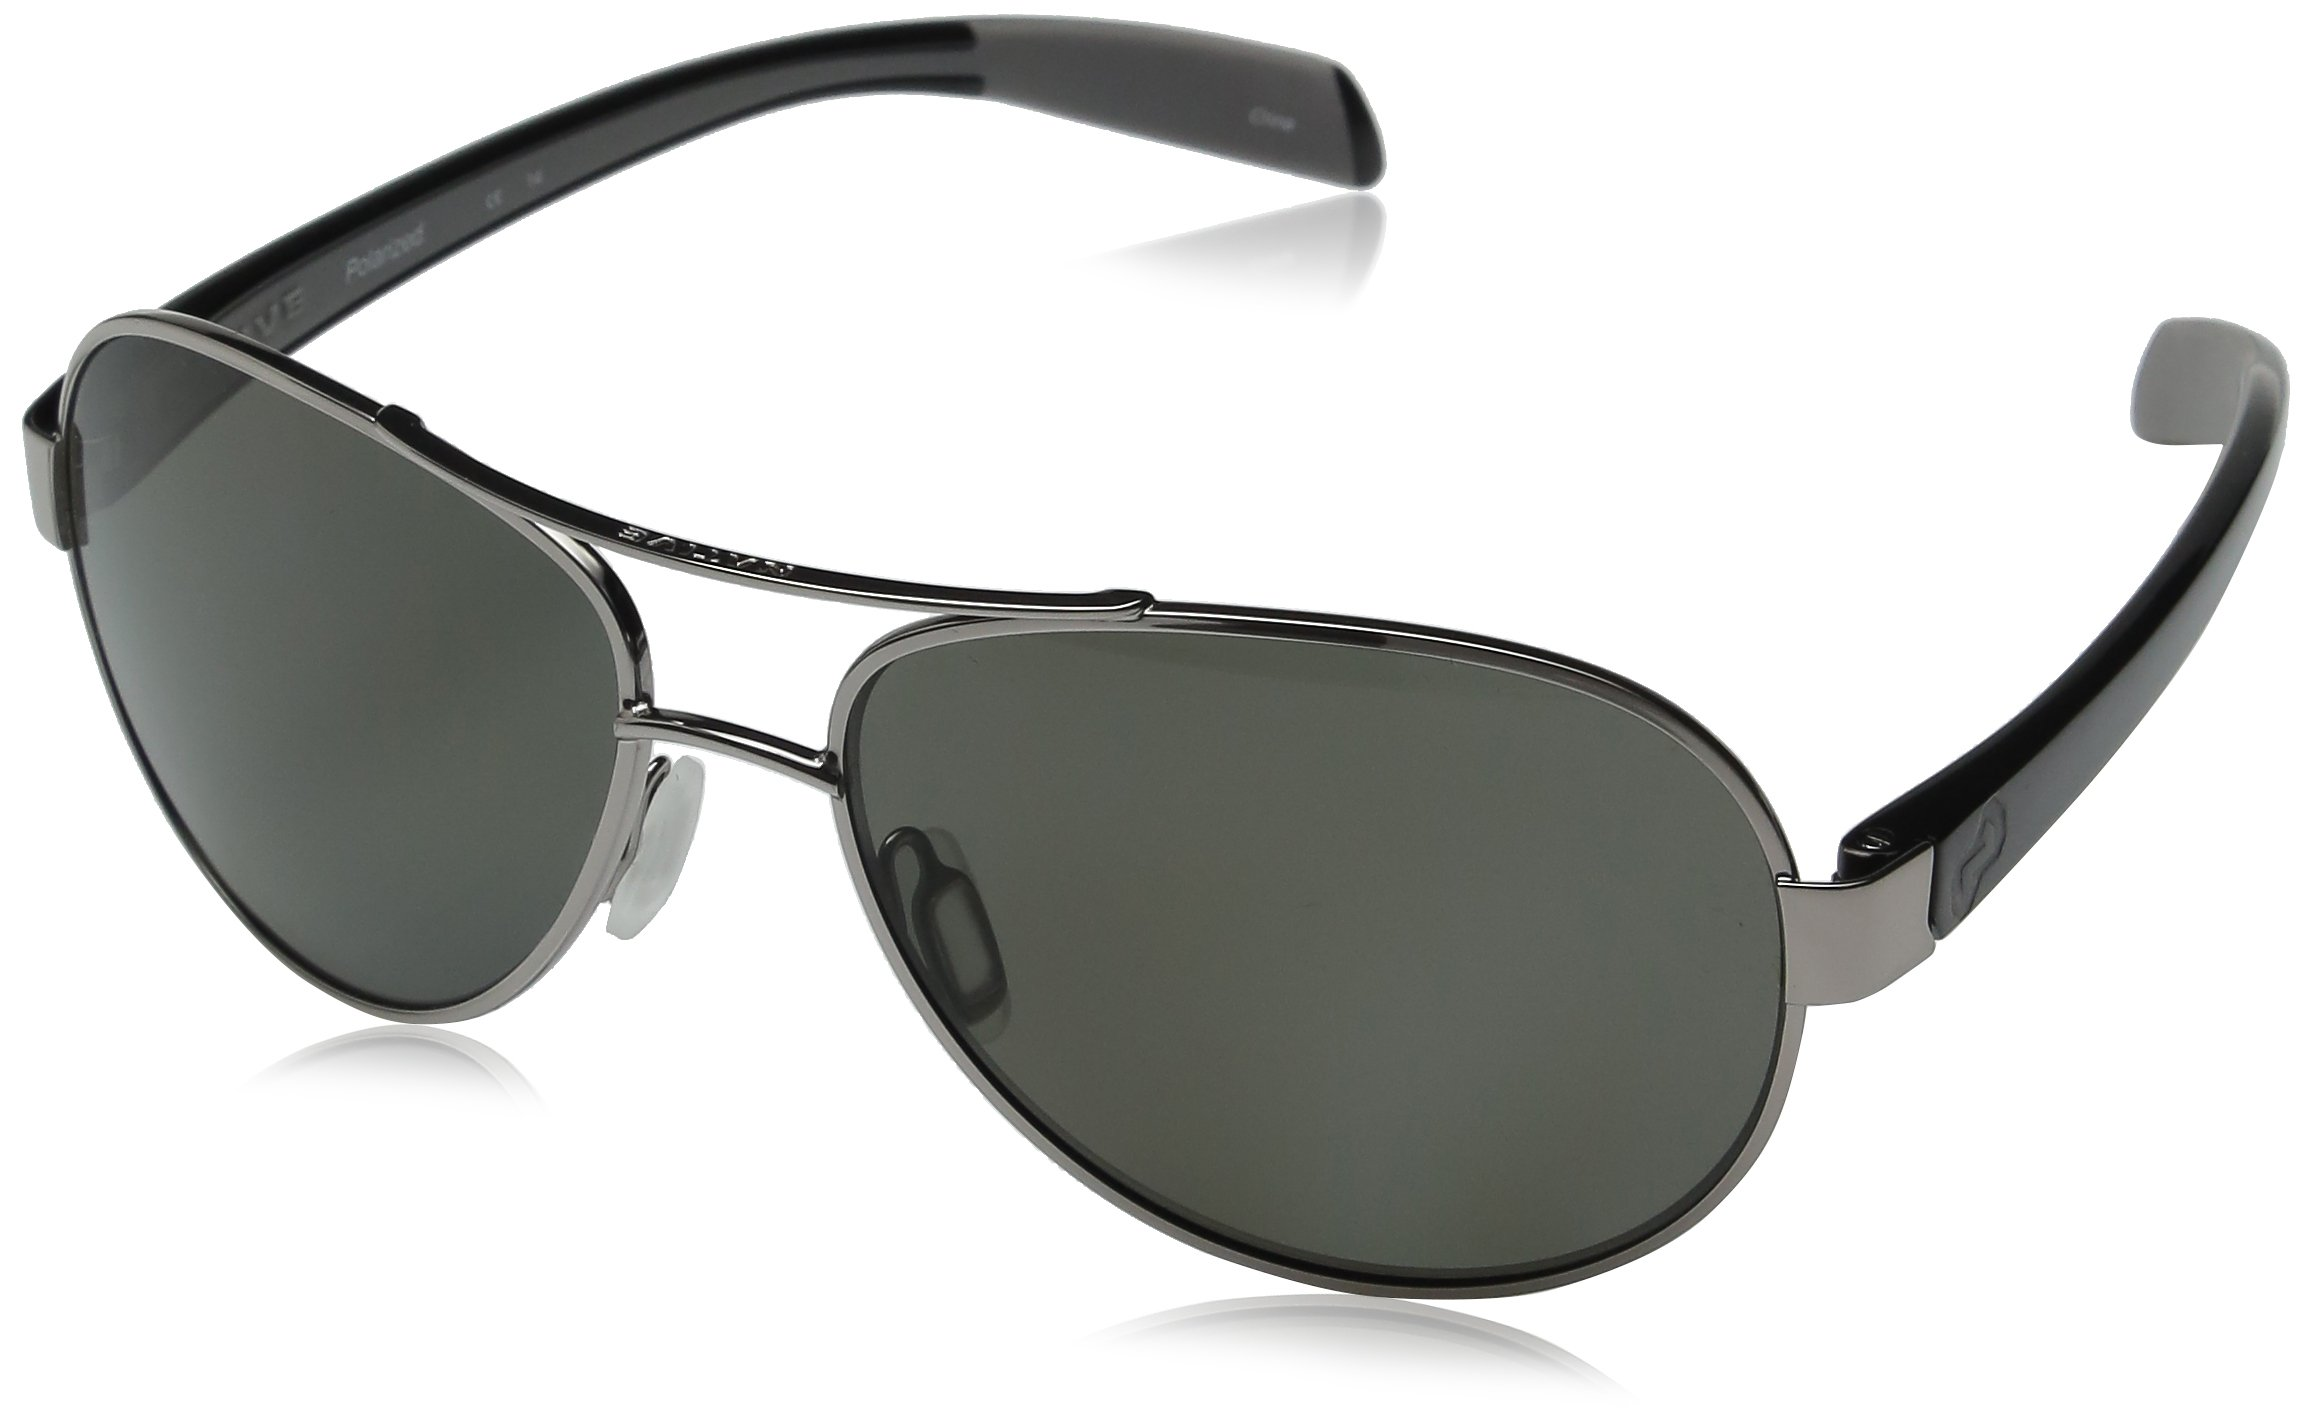 Native Eyewear Haskill Polarized Sunglass, Chrome and Iron Frame/Gray Lens